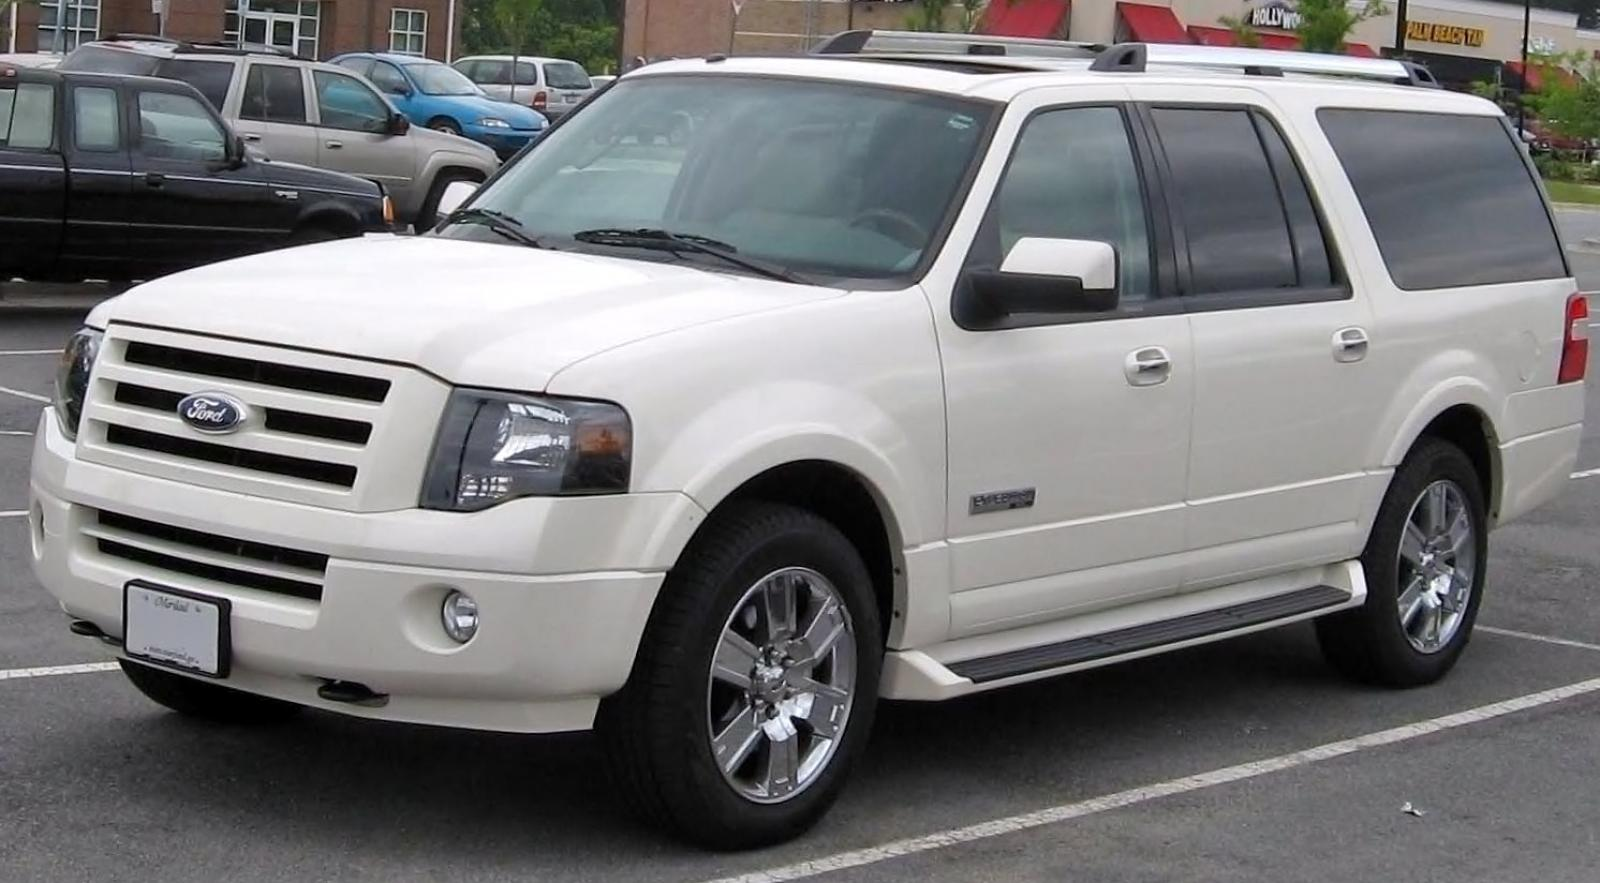 2009 Ford Expedition El Information And Photos Zomb Drive